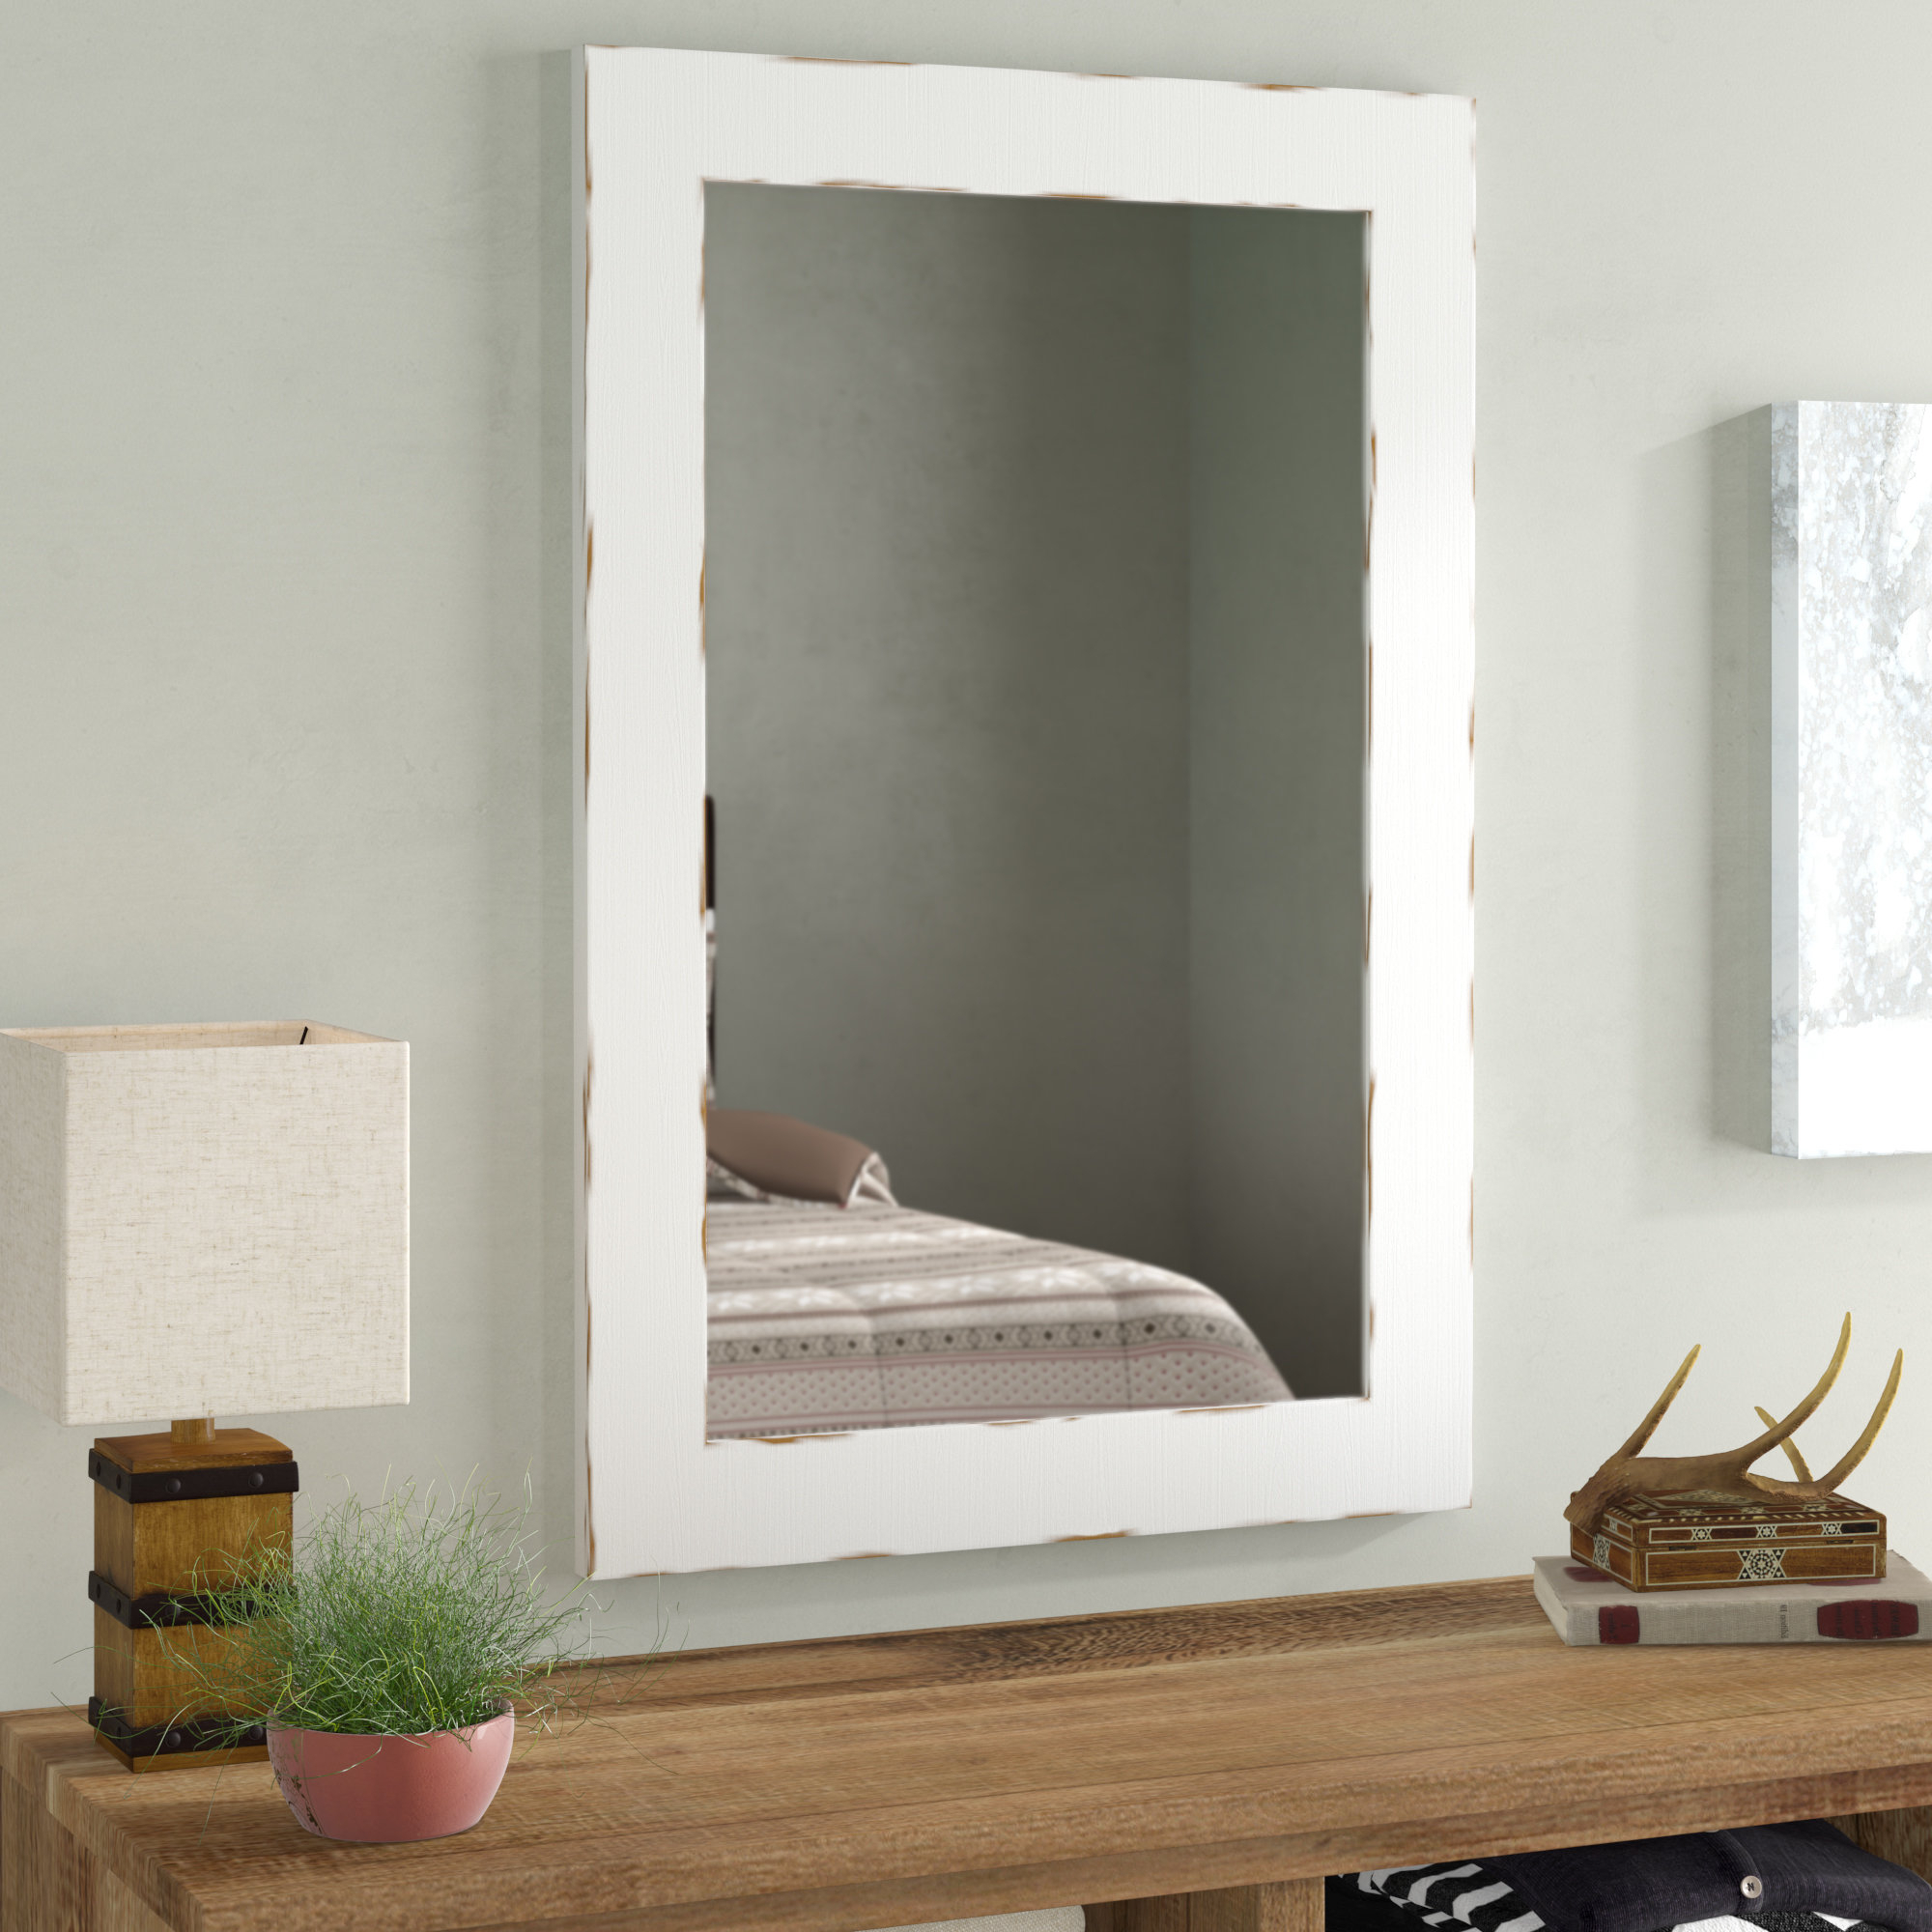 2020 Bedroom Wall Mirrors With Regard To Longwood Wall Mirror (View 3 of 20)